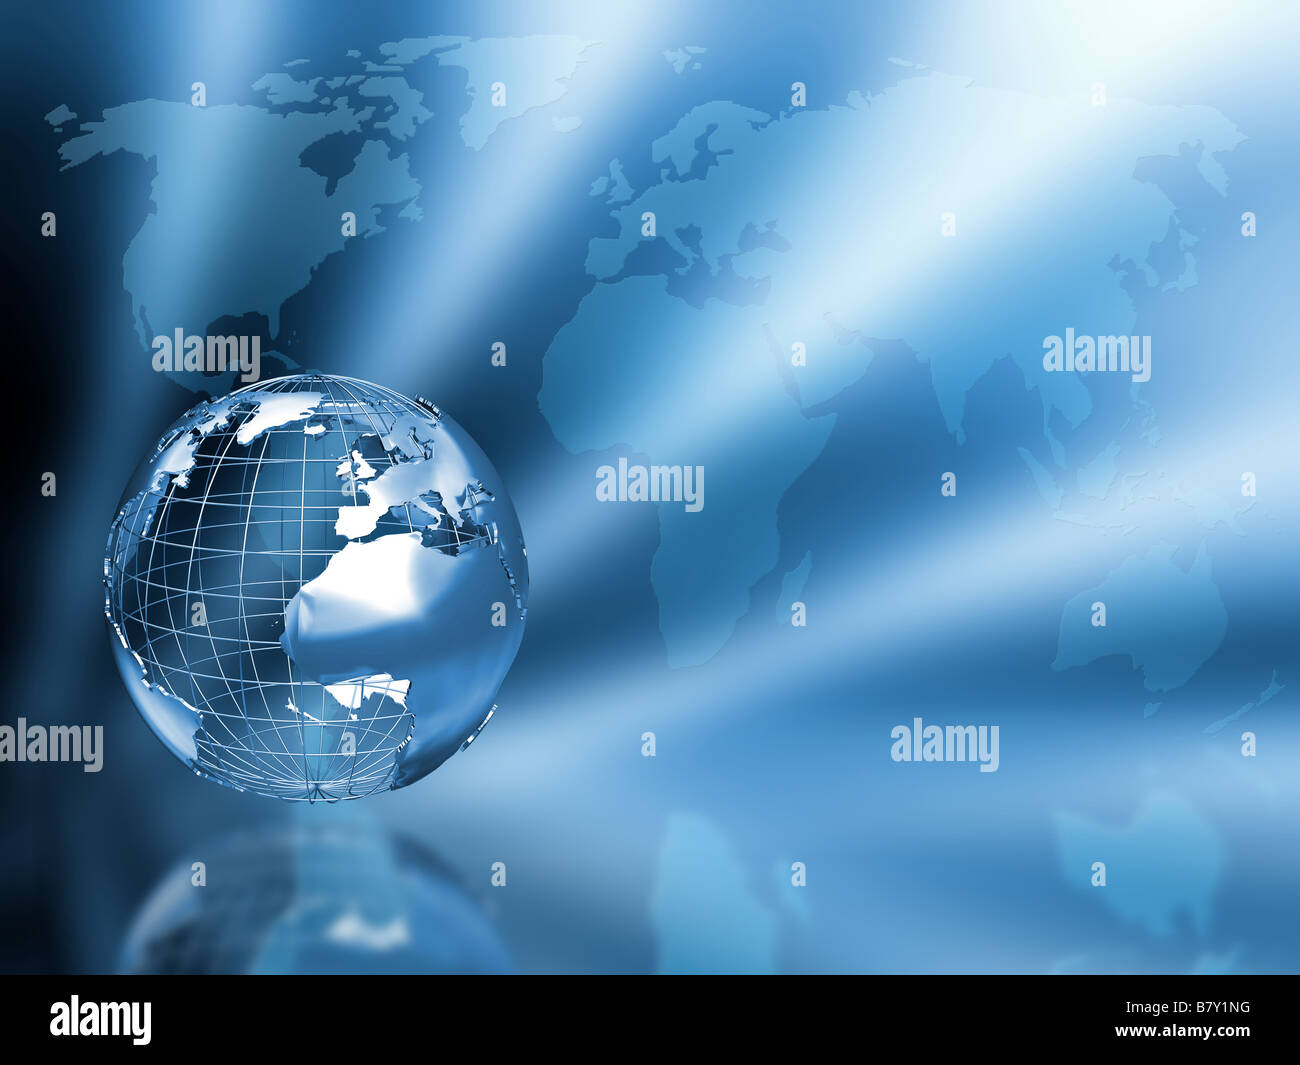 3d render of a globe on a world map background stock photo 22107052 3d render of a globe on a world map background gumiabroncs Gallery